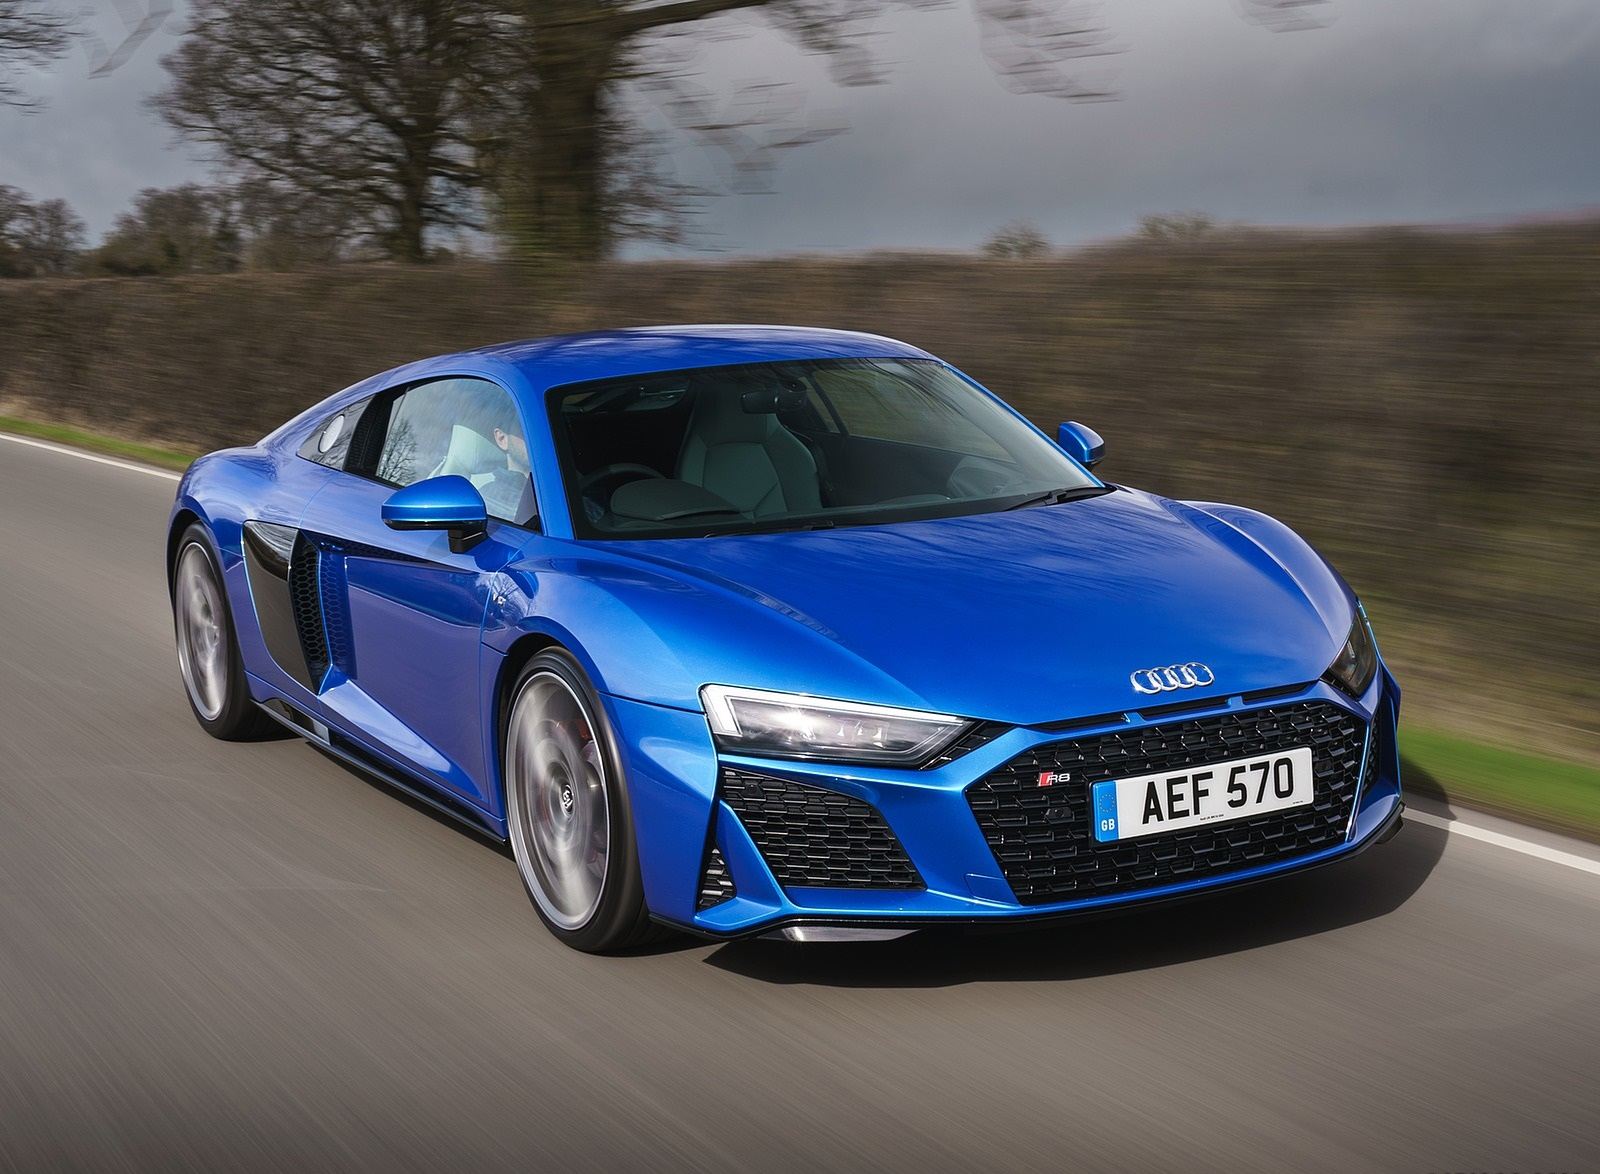 2019 Audi R8 V10 Coupe quattro (UK-Spec) Front Three-Quarter Wallpaper (14)